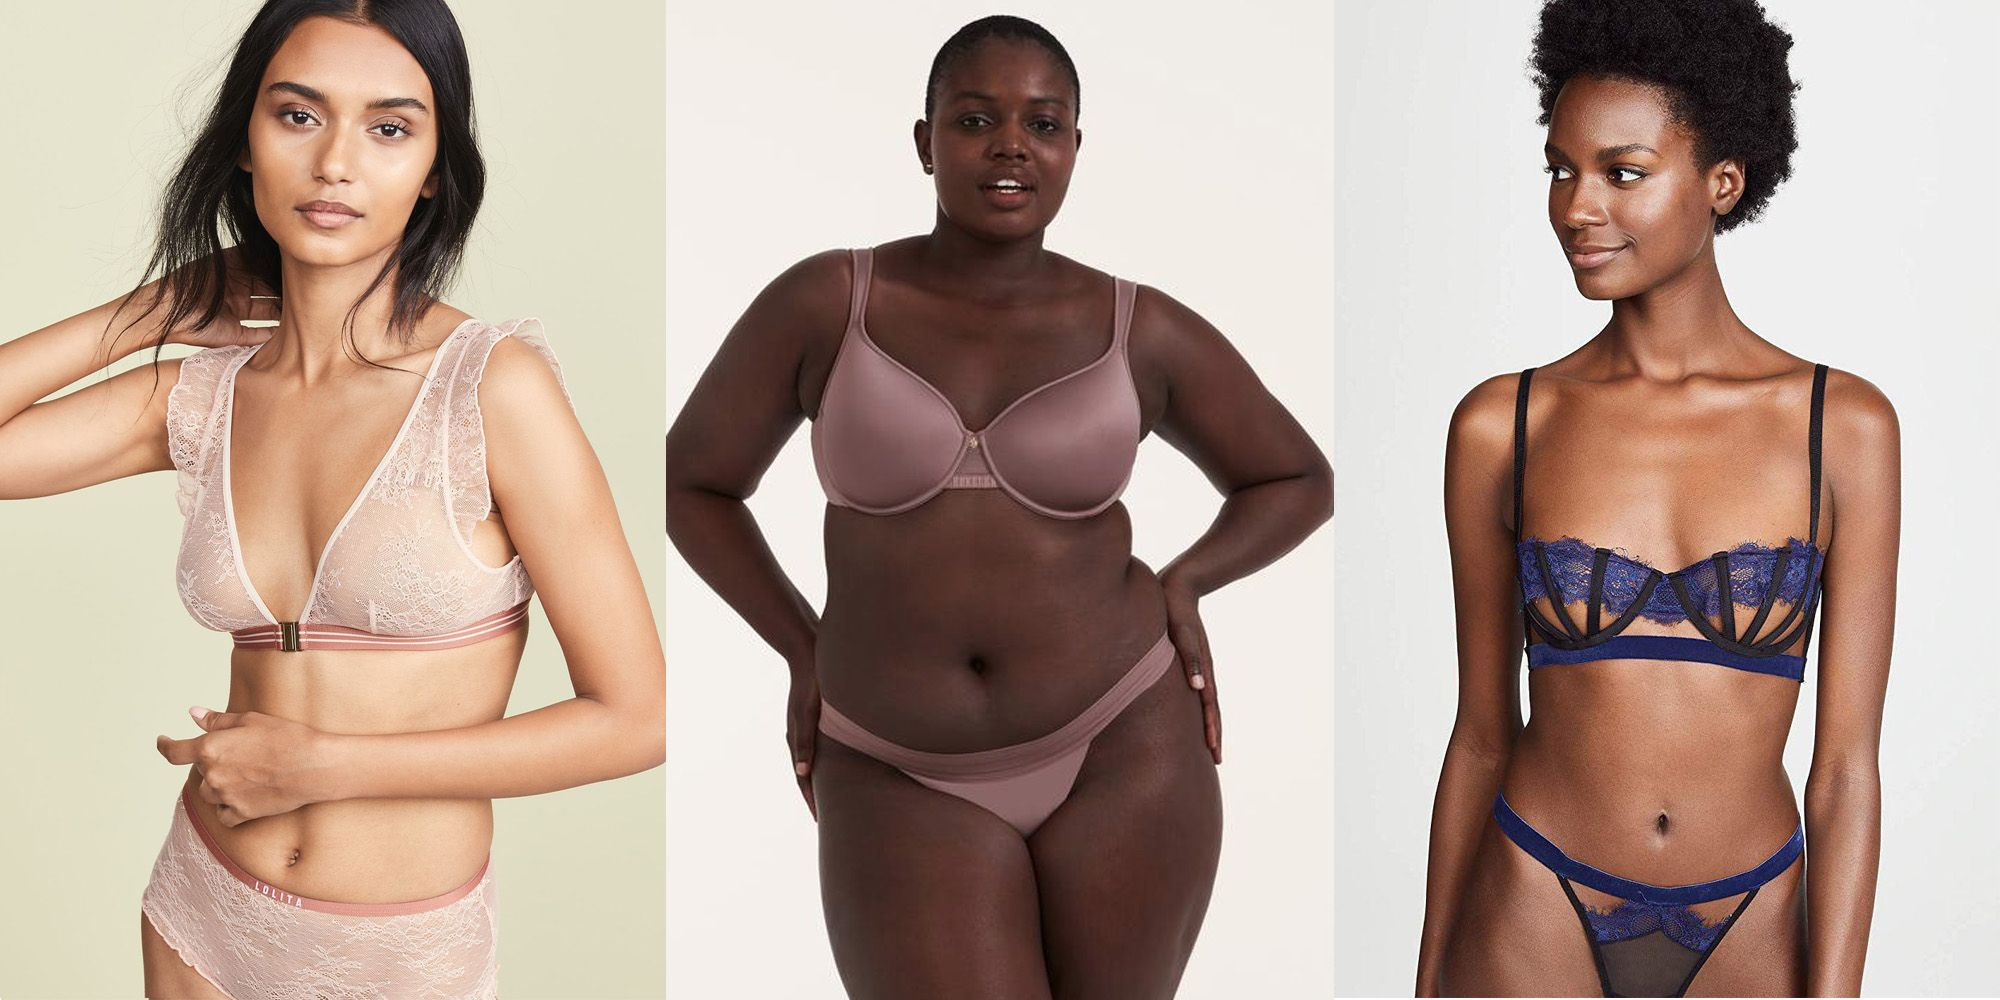 35f2f2b5bfbf 25 Best Lingerie Brands — Sexy, Inexpensive Lingerie Brands to Shop Right  Now